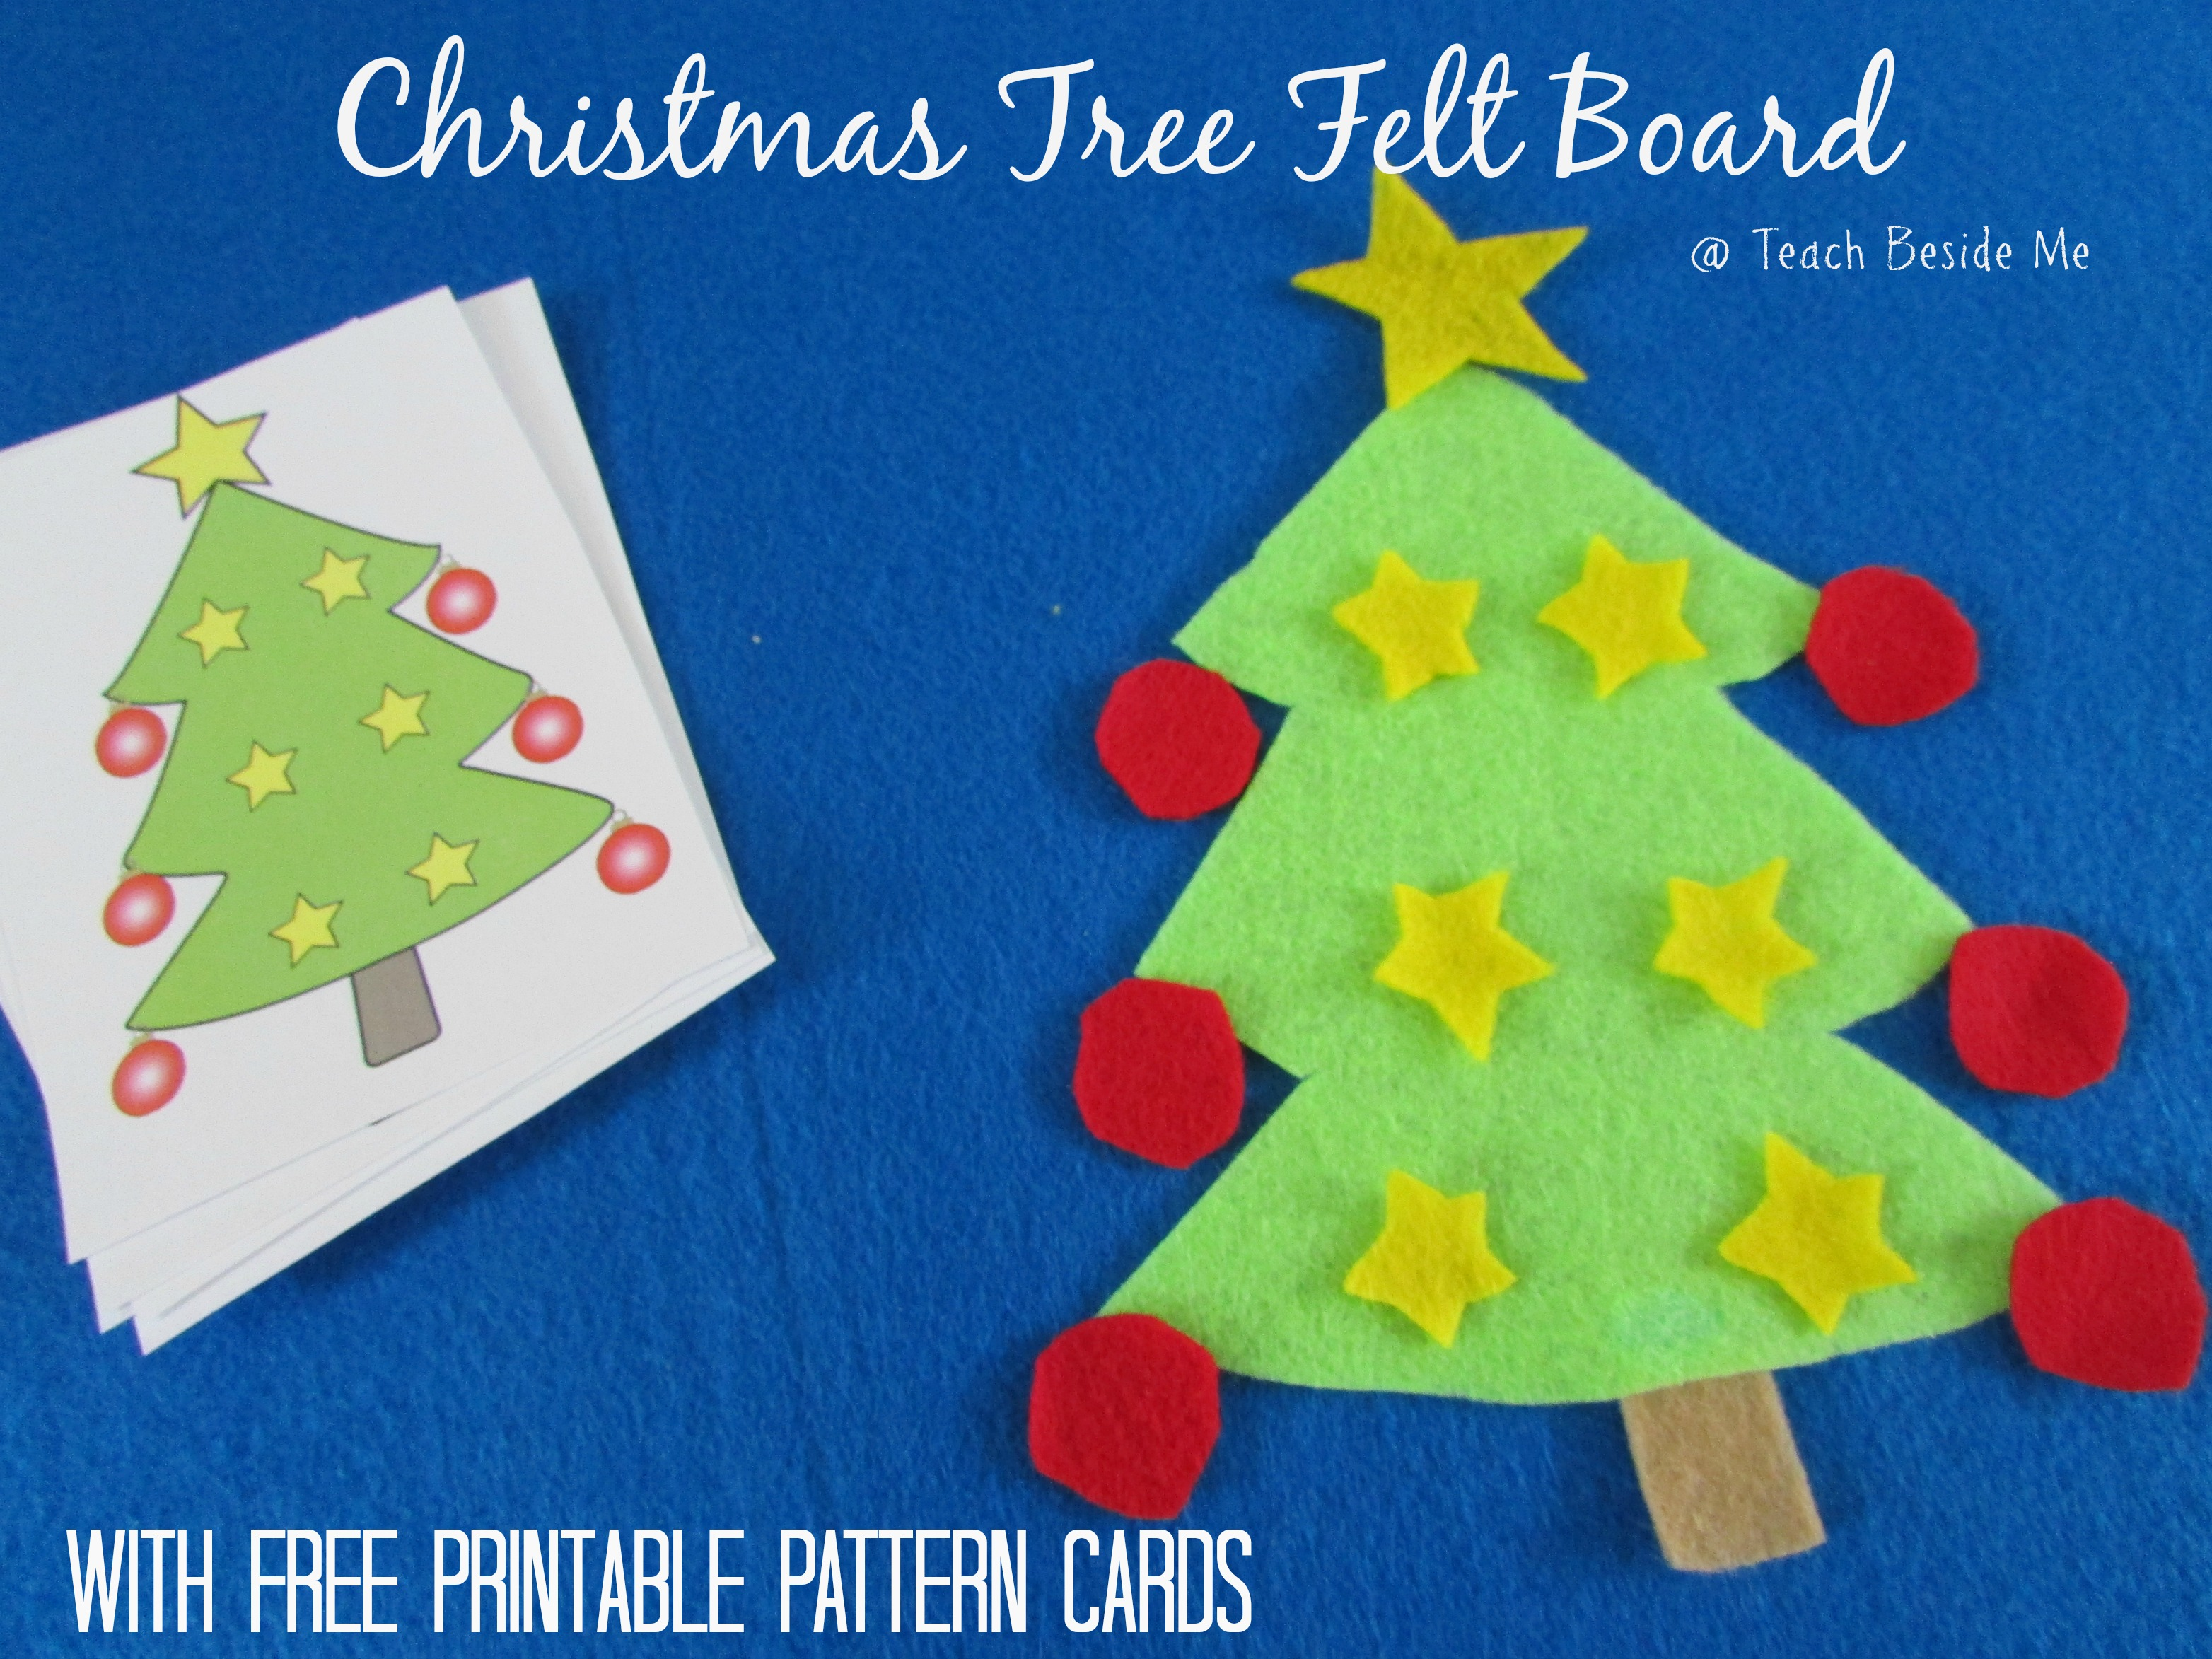 picture about Free Printable Christmas Ornament Patterns referred to as Xmas Tree Felt Board With Printable Playing cards Educate Beside Me